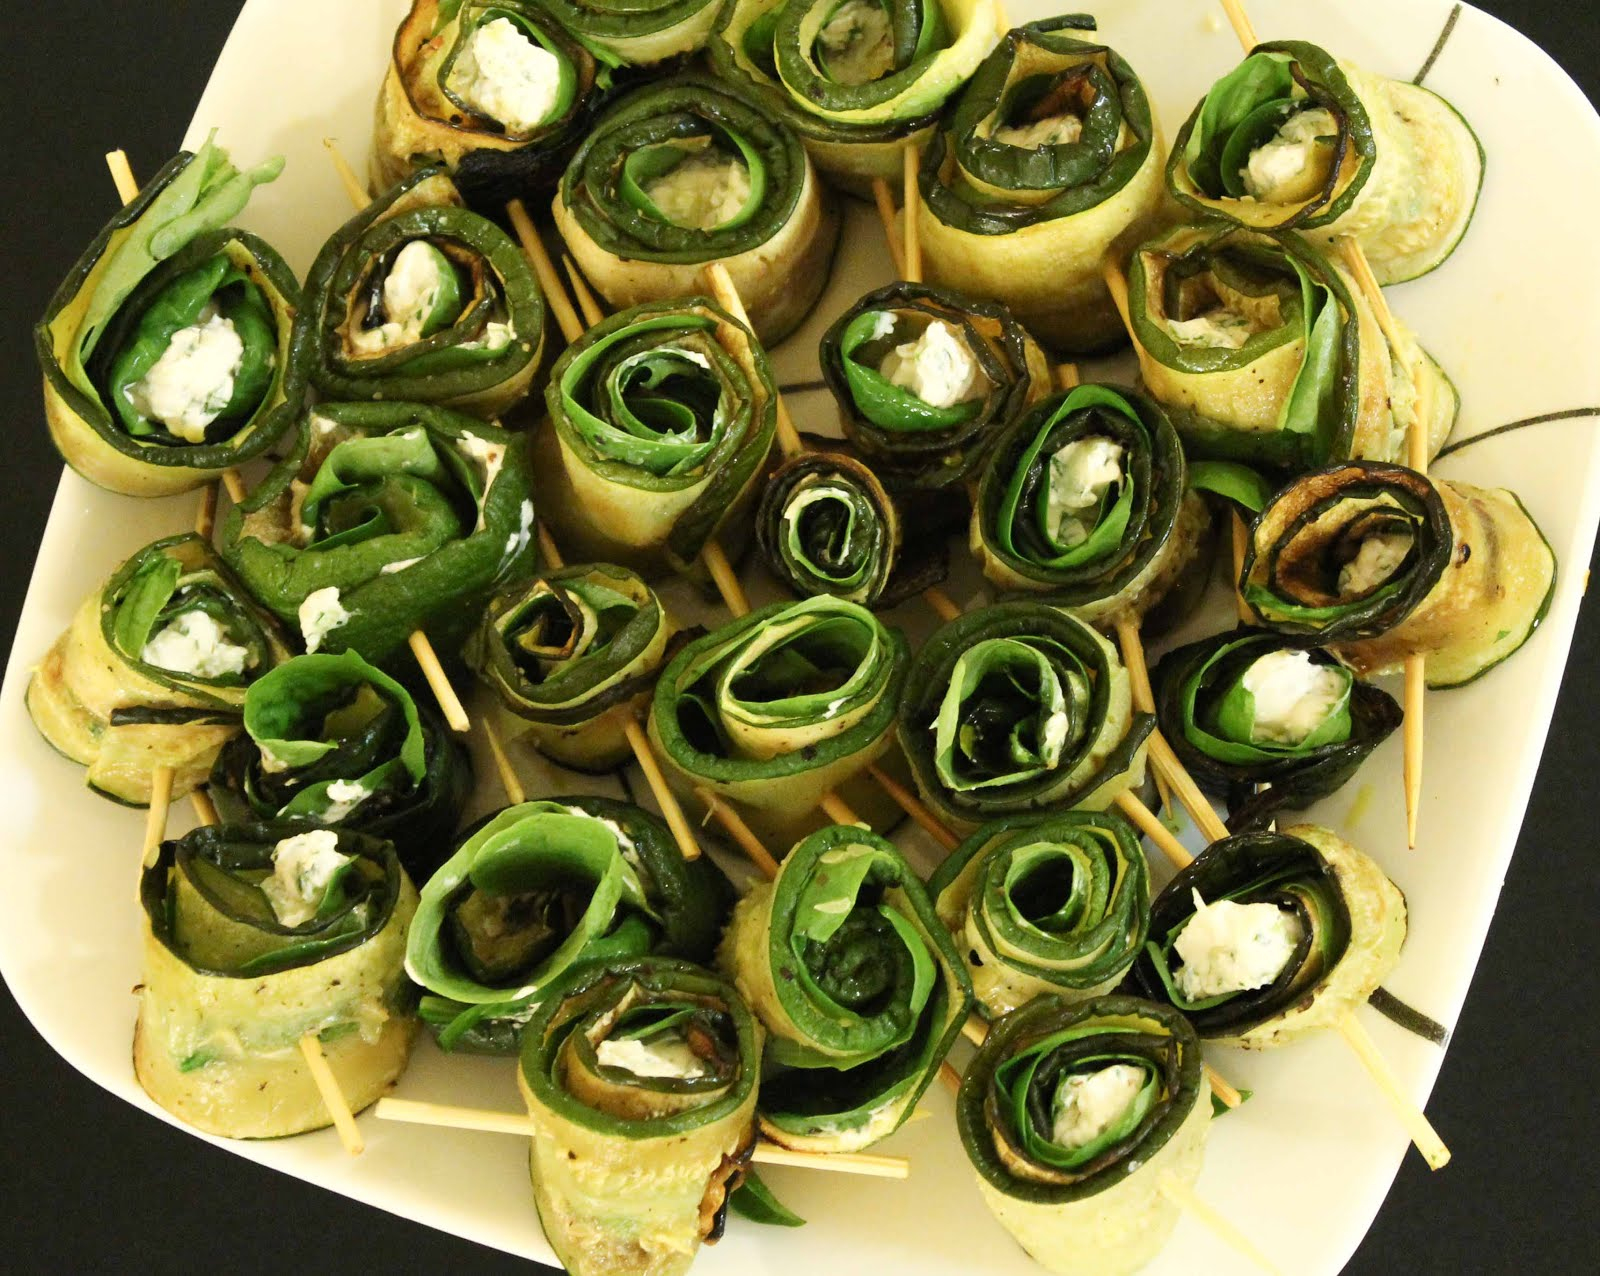 Mr Green zucchini, basil, spinach, garden herbs and cream cheese roll-ups.